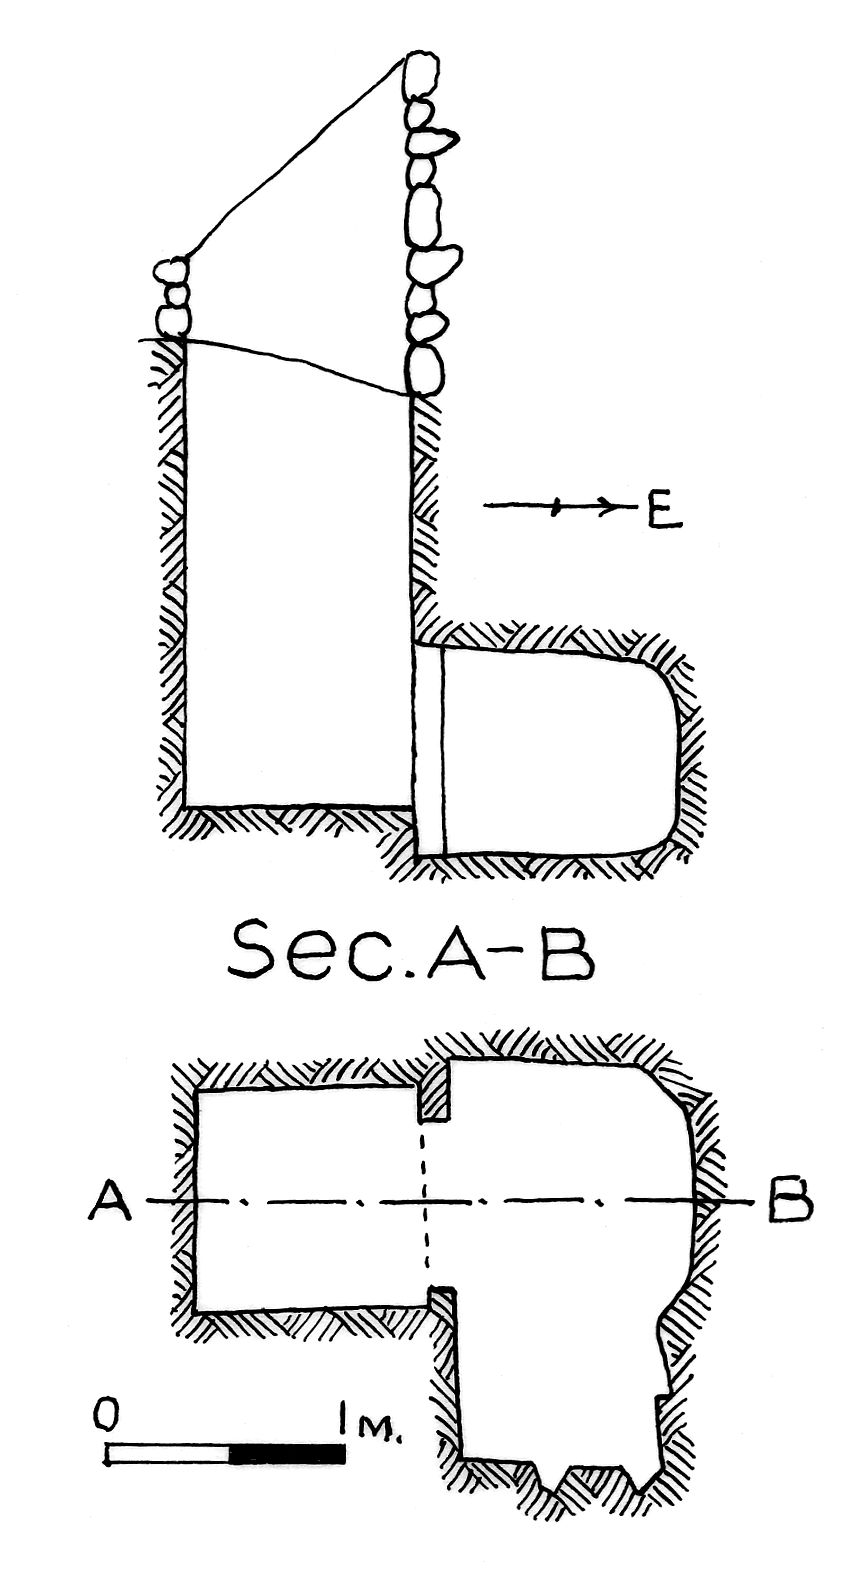 Maps and plans: G 7842, Shaft B